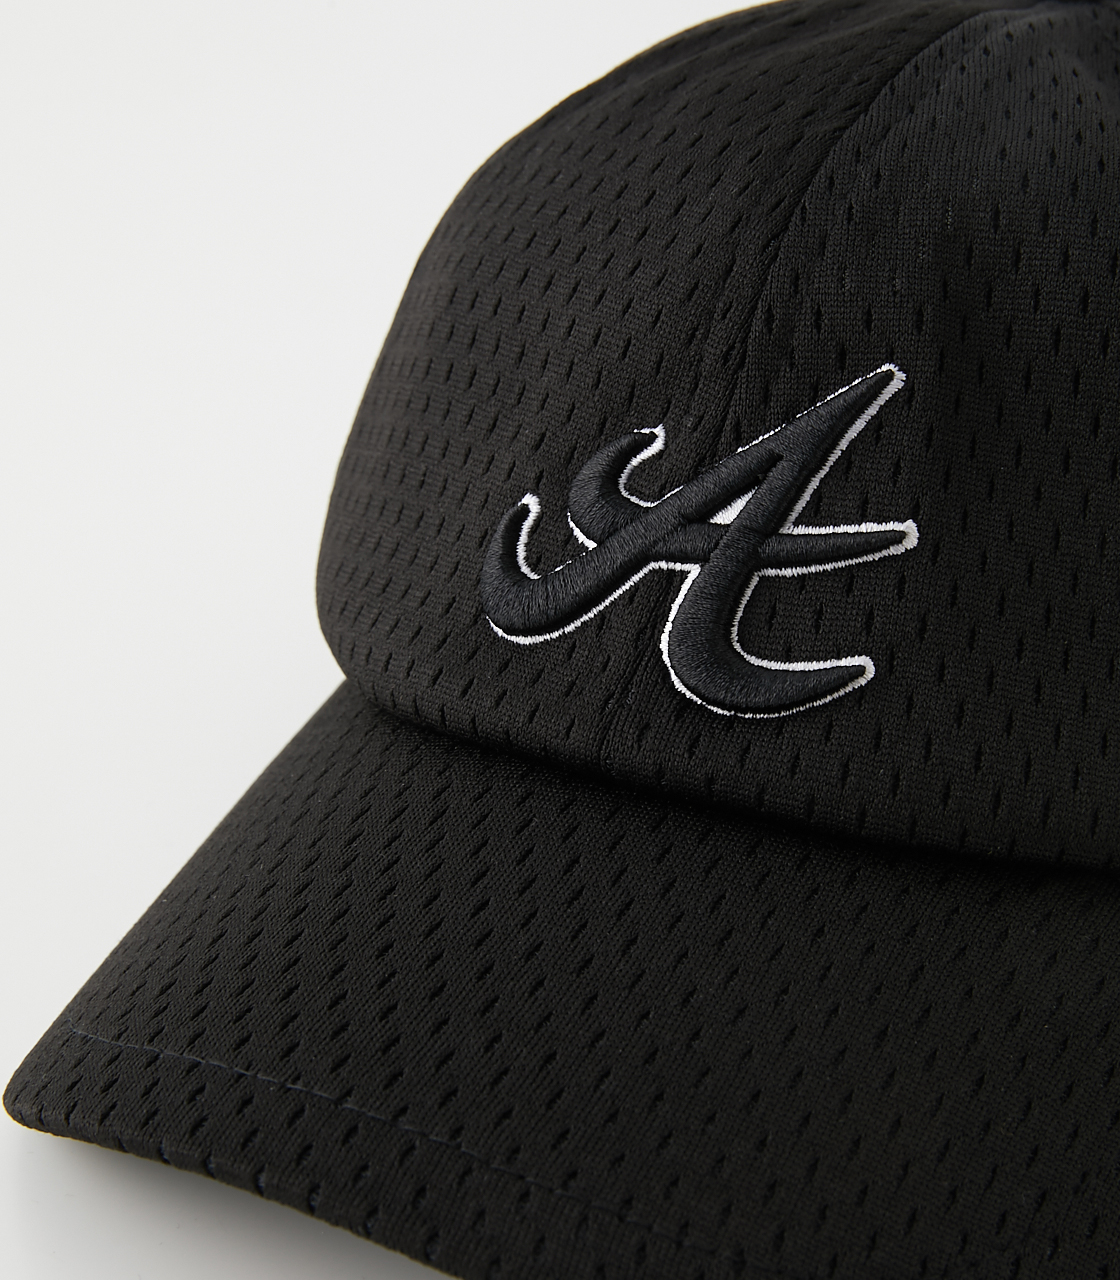 A LOGO ALL MESH CAP/アロゴオールメッシュキャップ 詳細画像 BLK 5